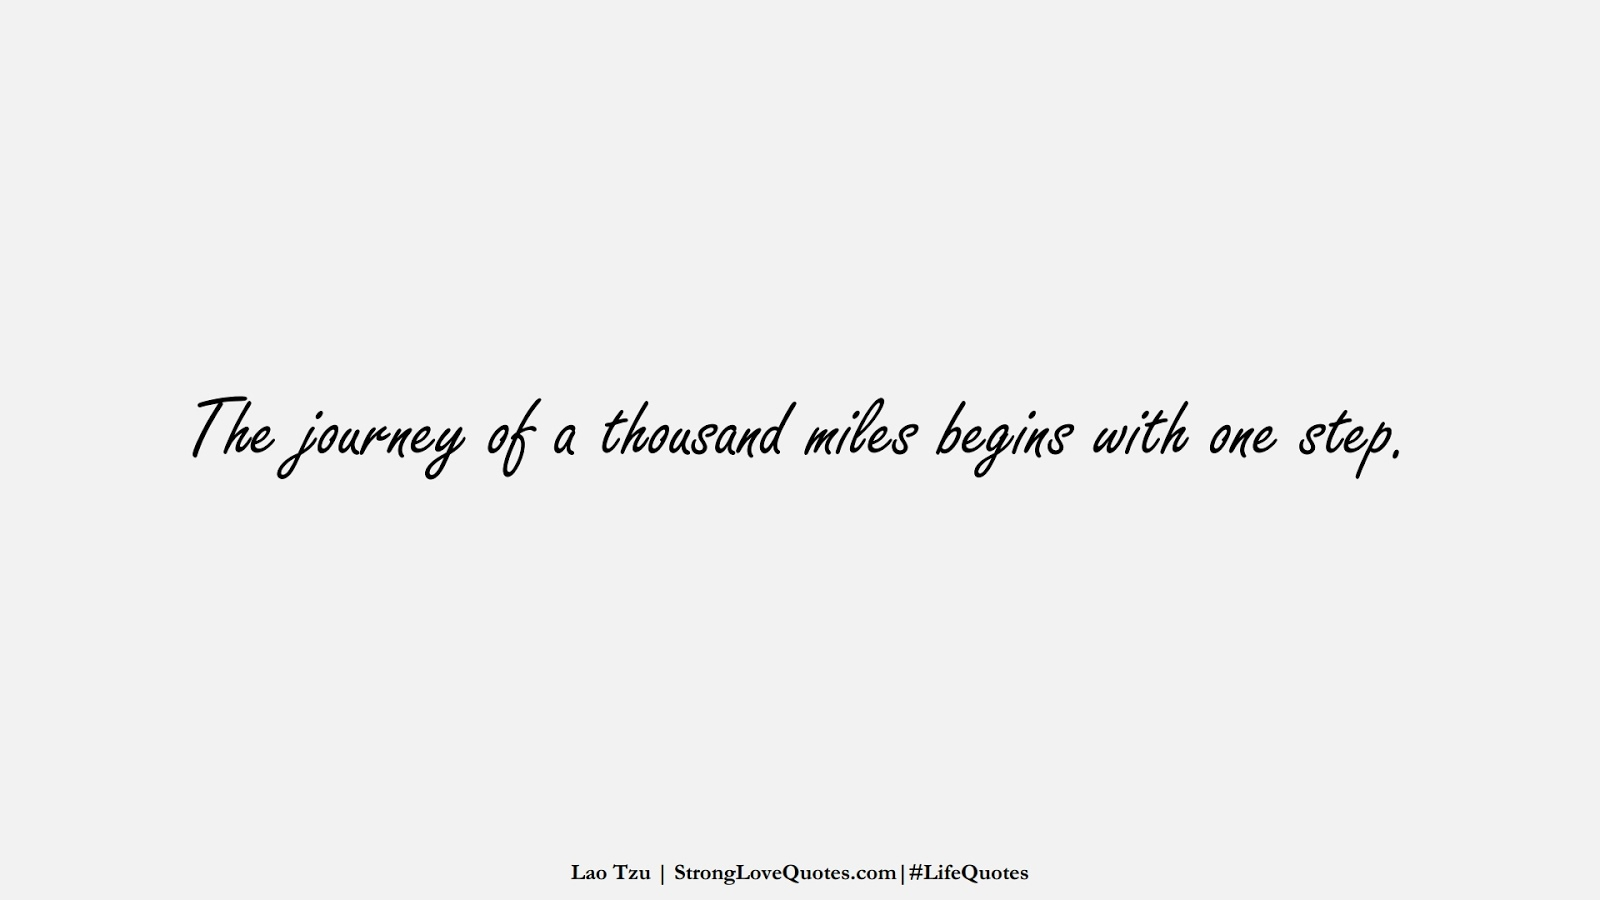 The journey of a thousand miles begins with one step. (Lao Tzu);  #LifeQuotes